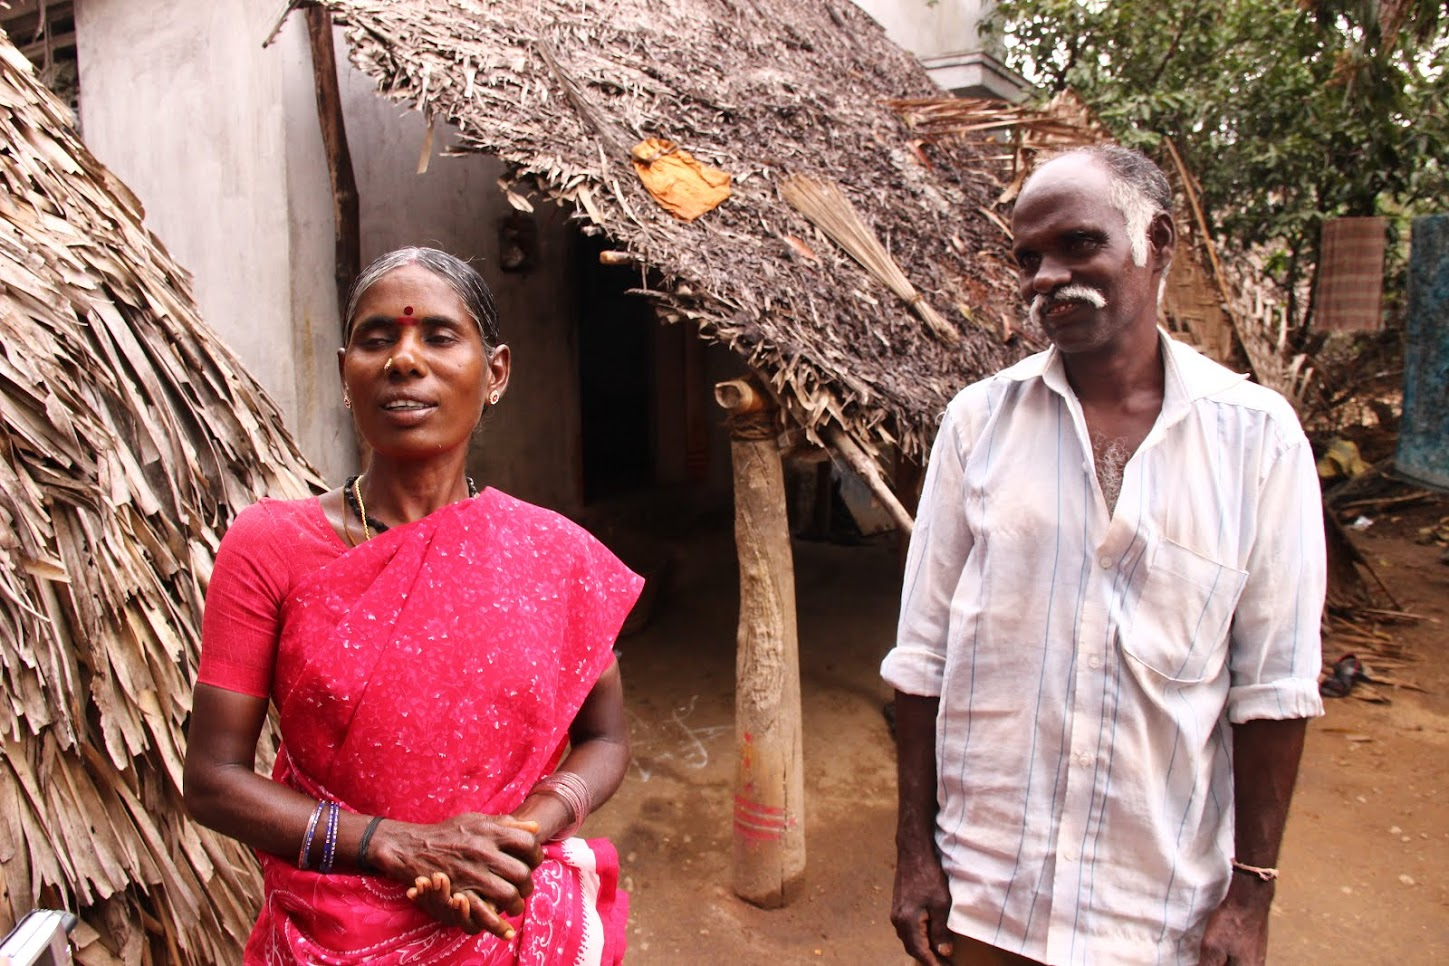 Pushpa (L) and Vadivelu, outside their house in Chenneri Village. Credit: Roy Benadict Naveen